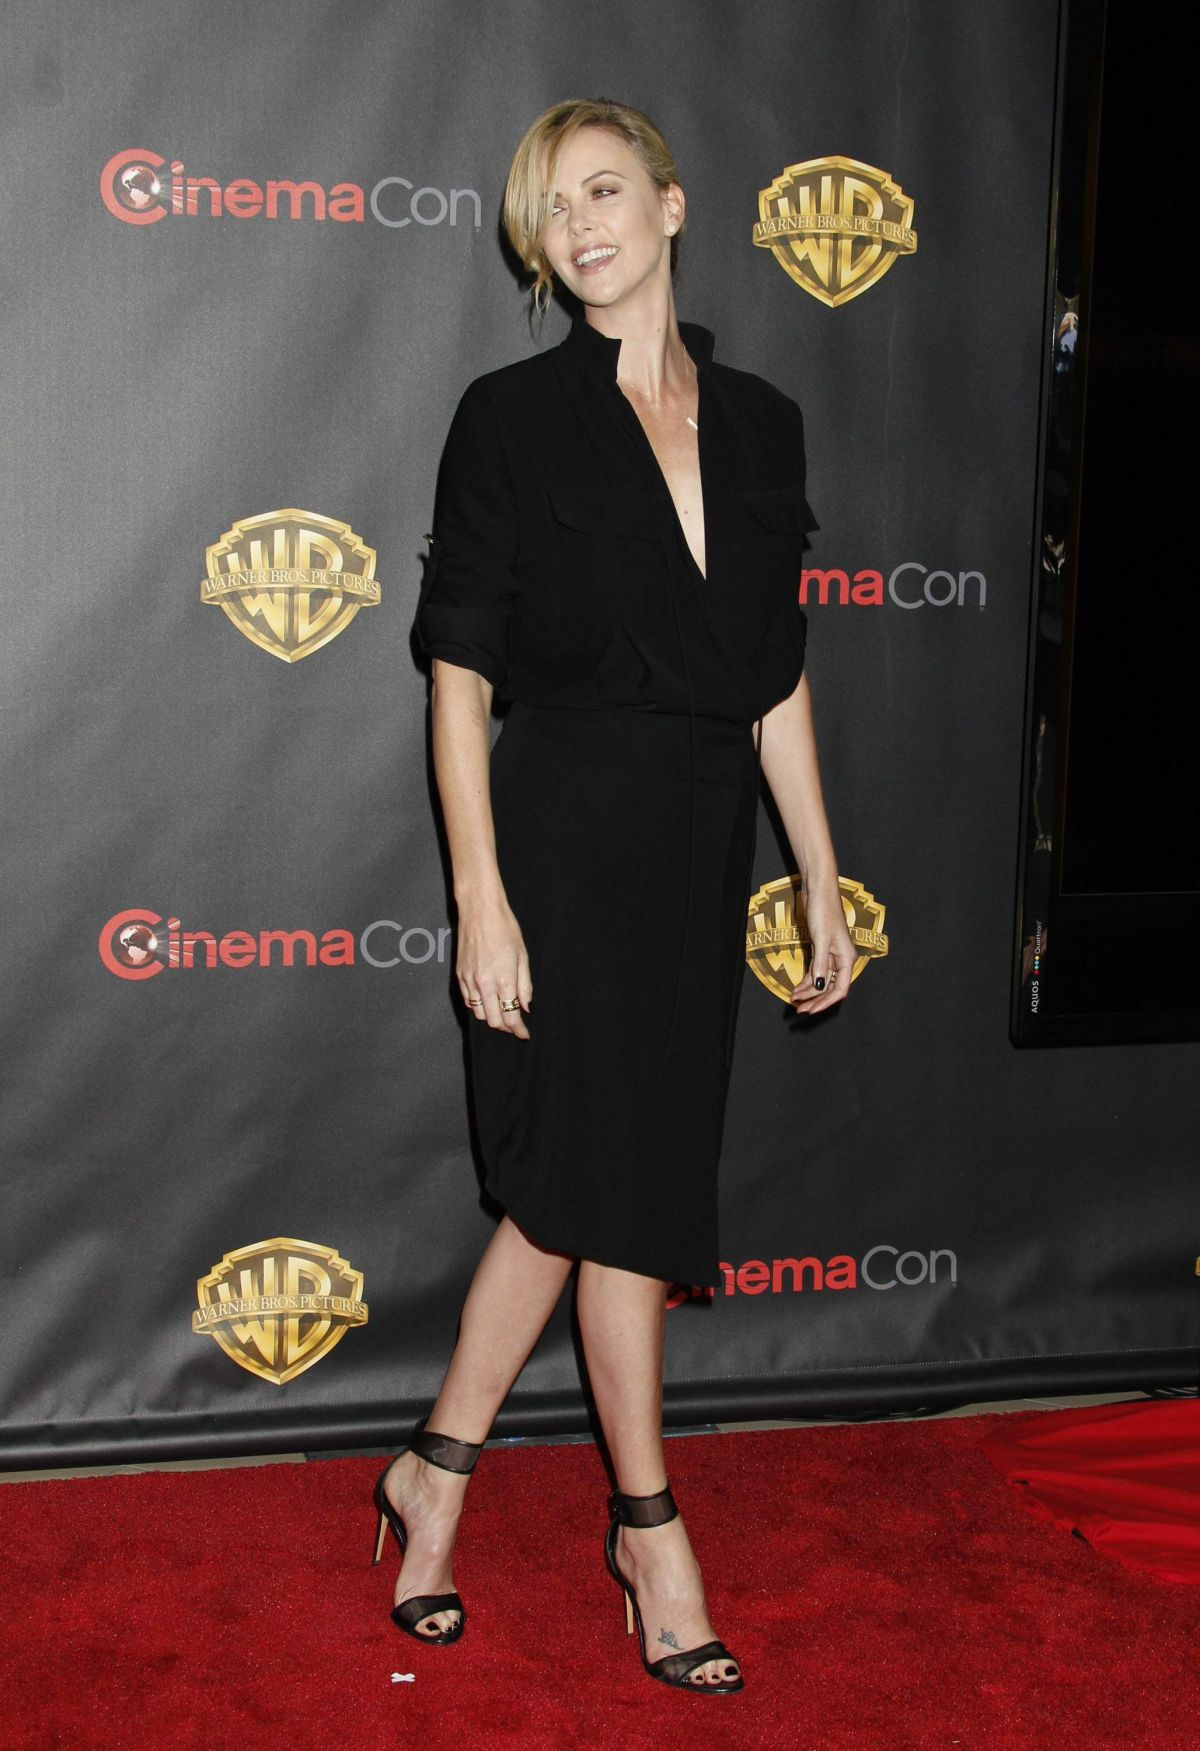 [Imagen: charlize-theron-at-2015-cinemacon-in-las-vegas_17.jpg]